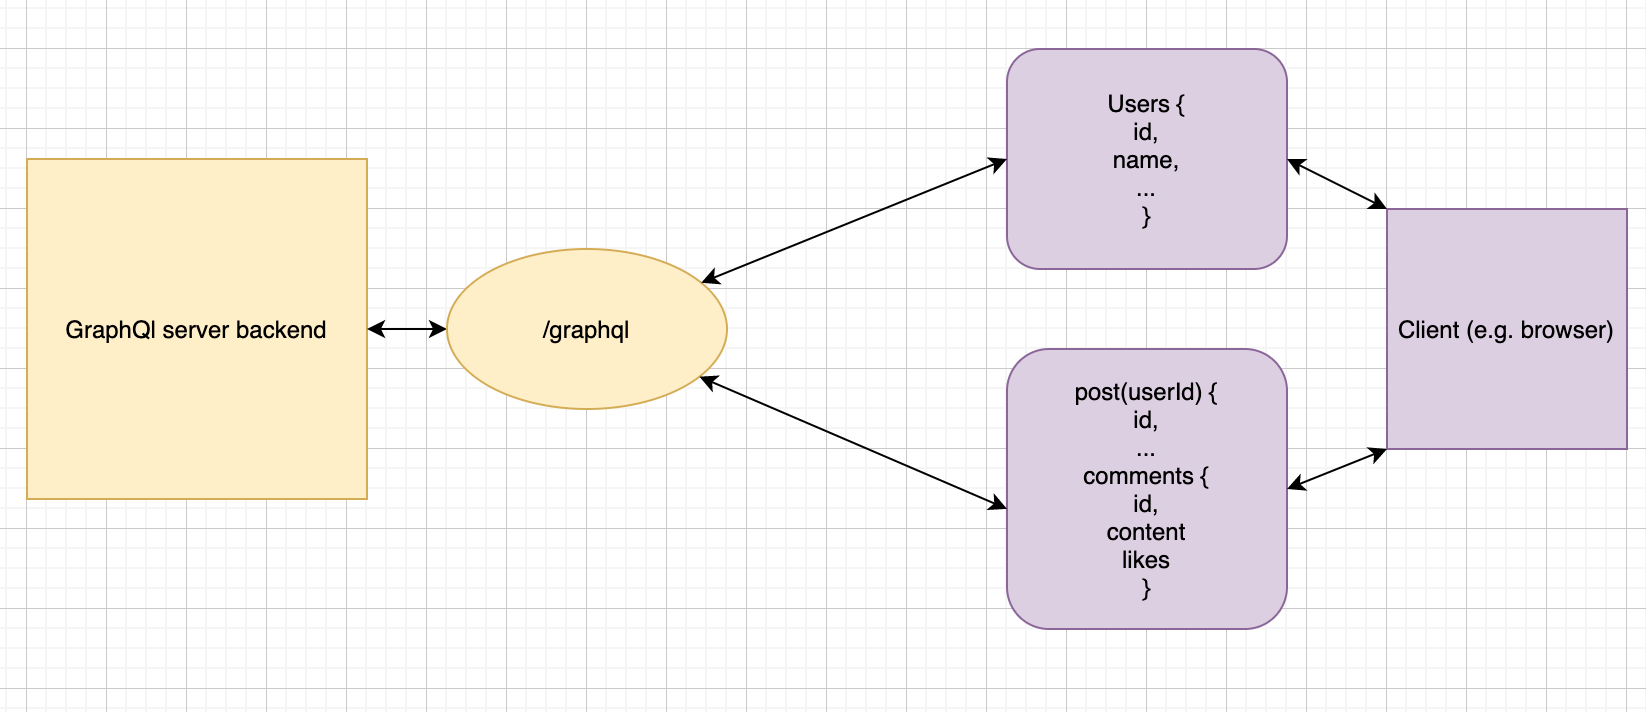 With GraphQL only one request is needed to get the comments on a blog post (given the user's id)